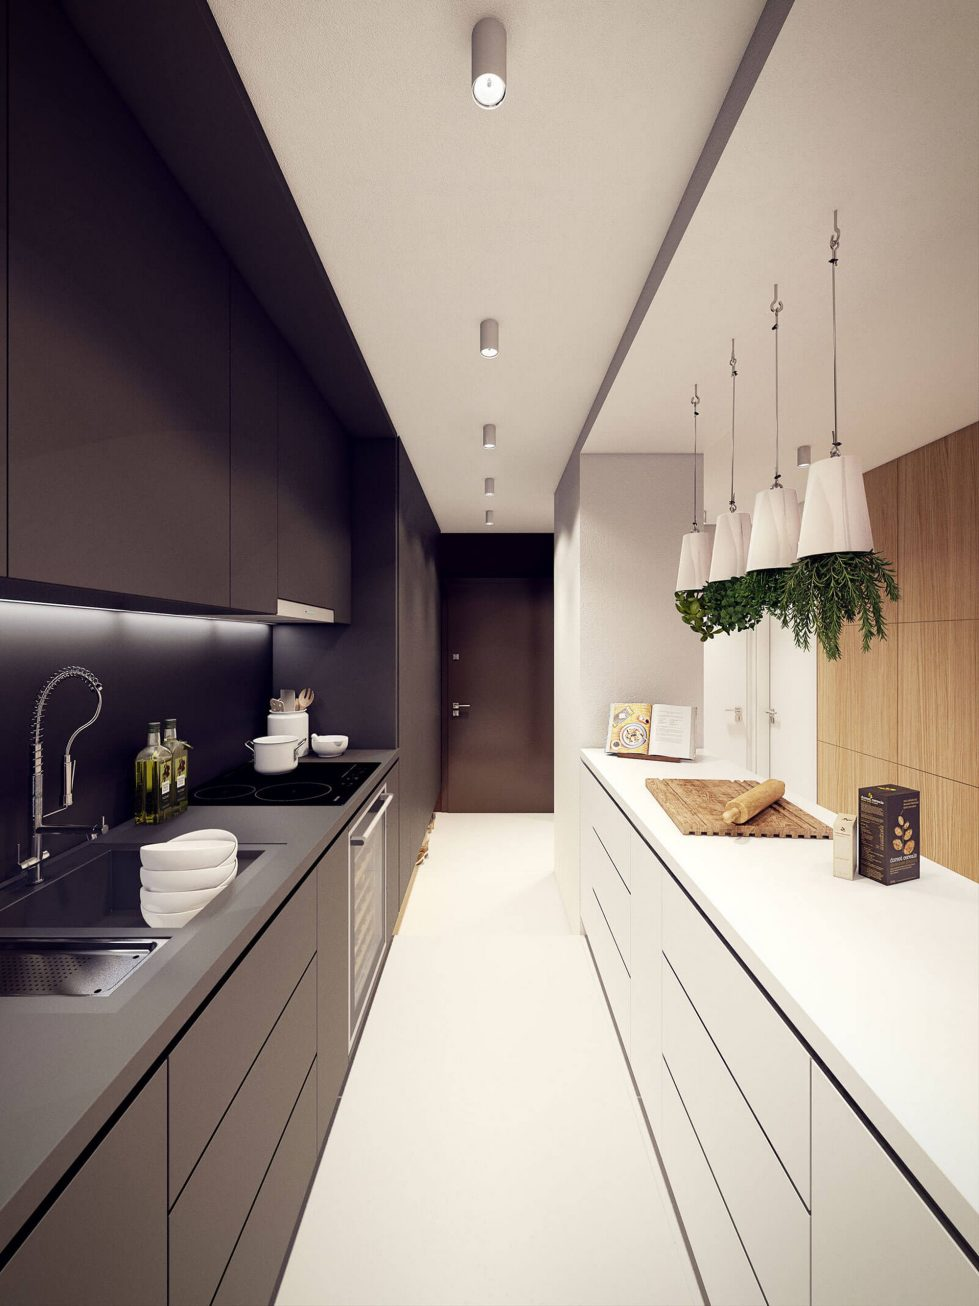 Designing project of the stylish apartments in Lodz 14